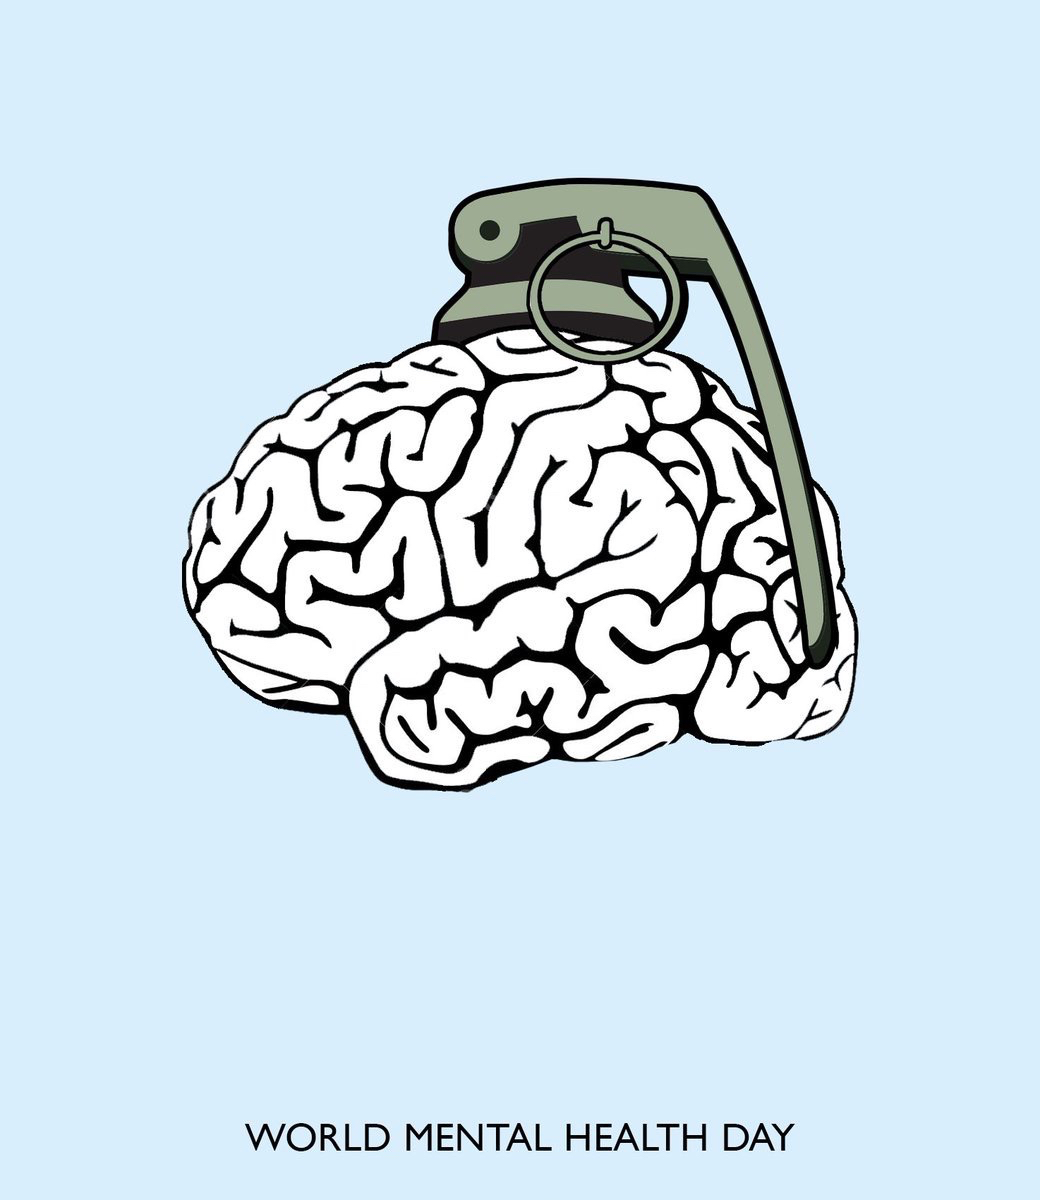 Ad concept for World Mental Health Day - brain grenade